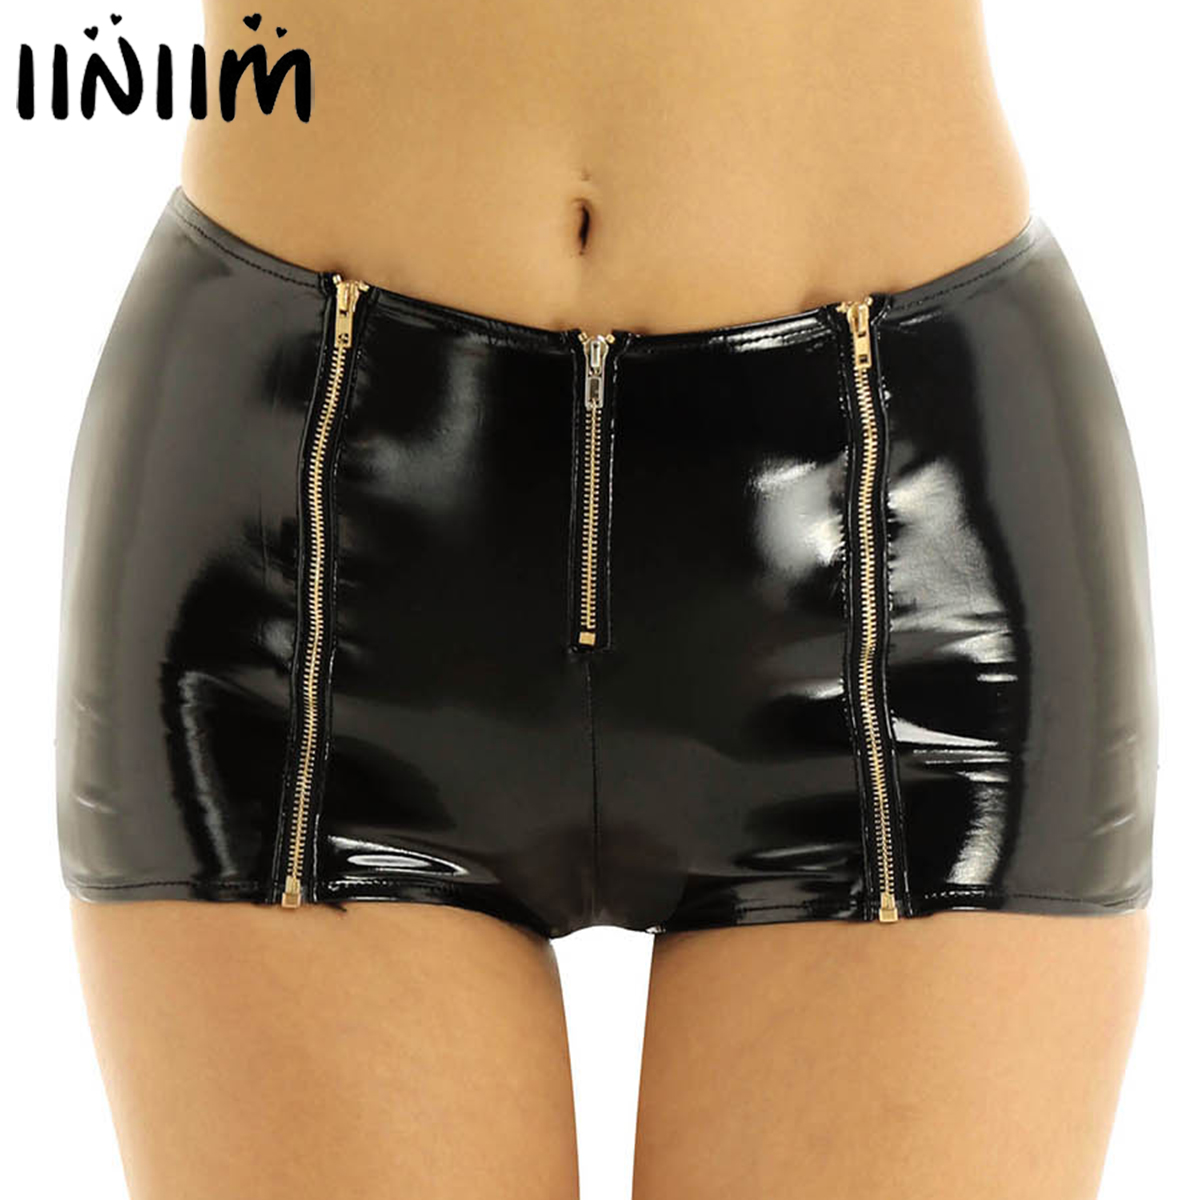 Iiniim Womens Femme Punk Pole Dance Party Clubwear Wetlook Shorts Patent Leather Front Zipper Low Rise Mini Shorts For Costumes